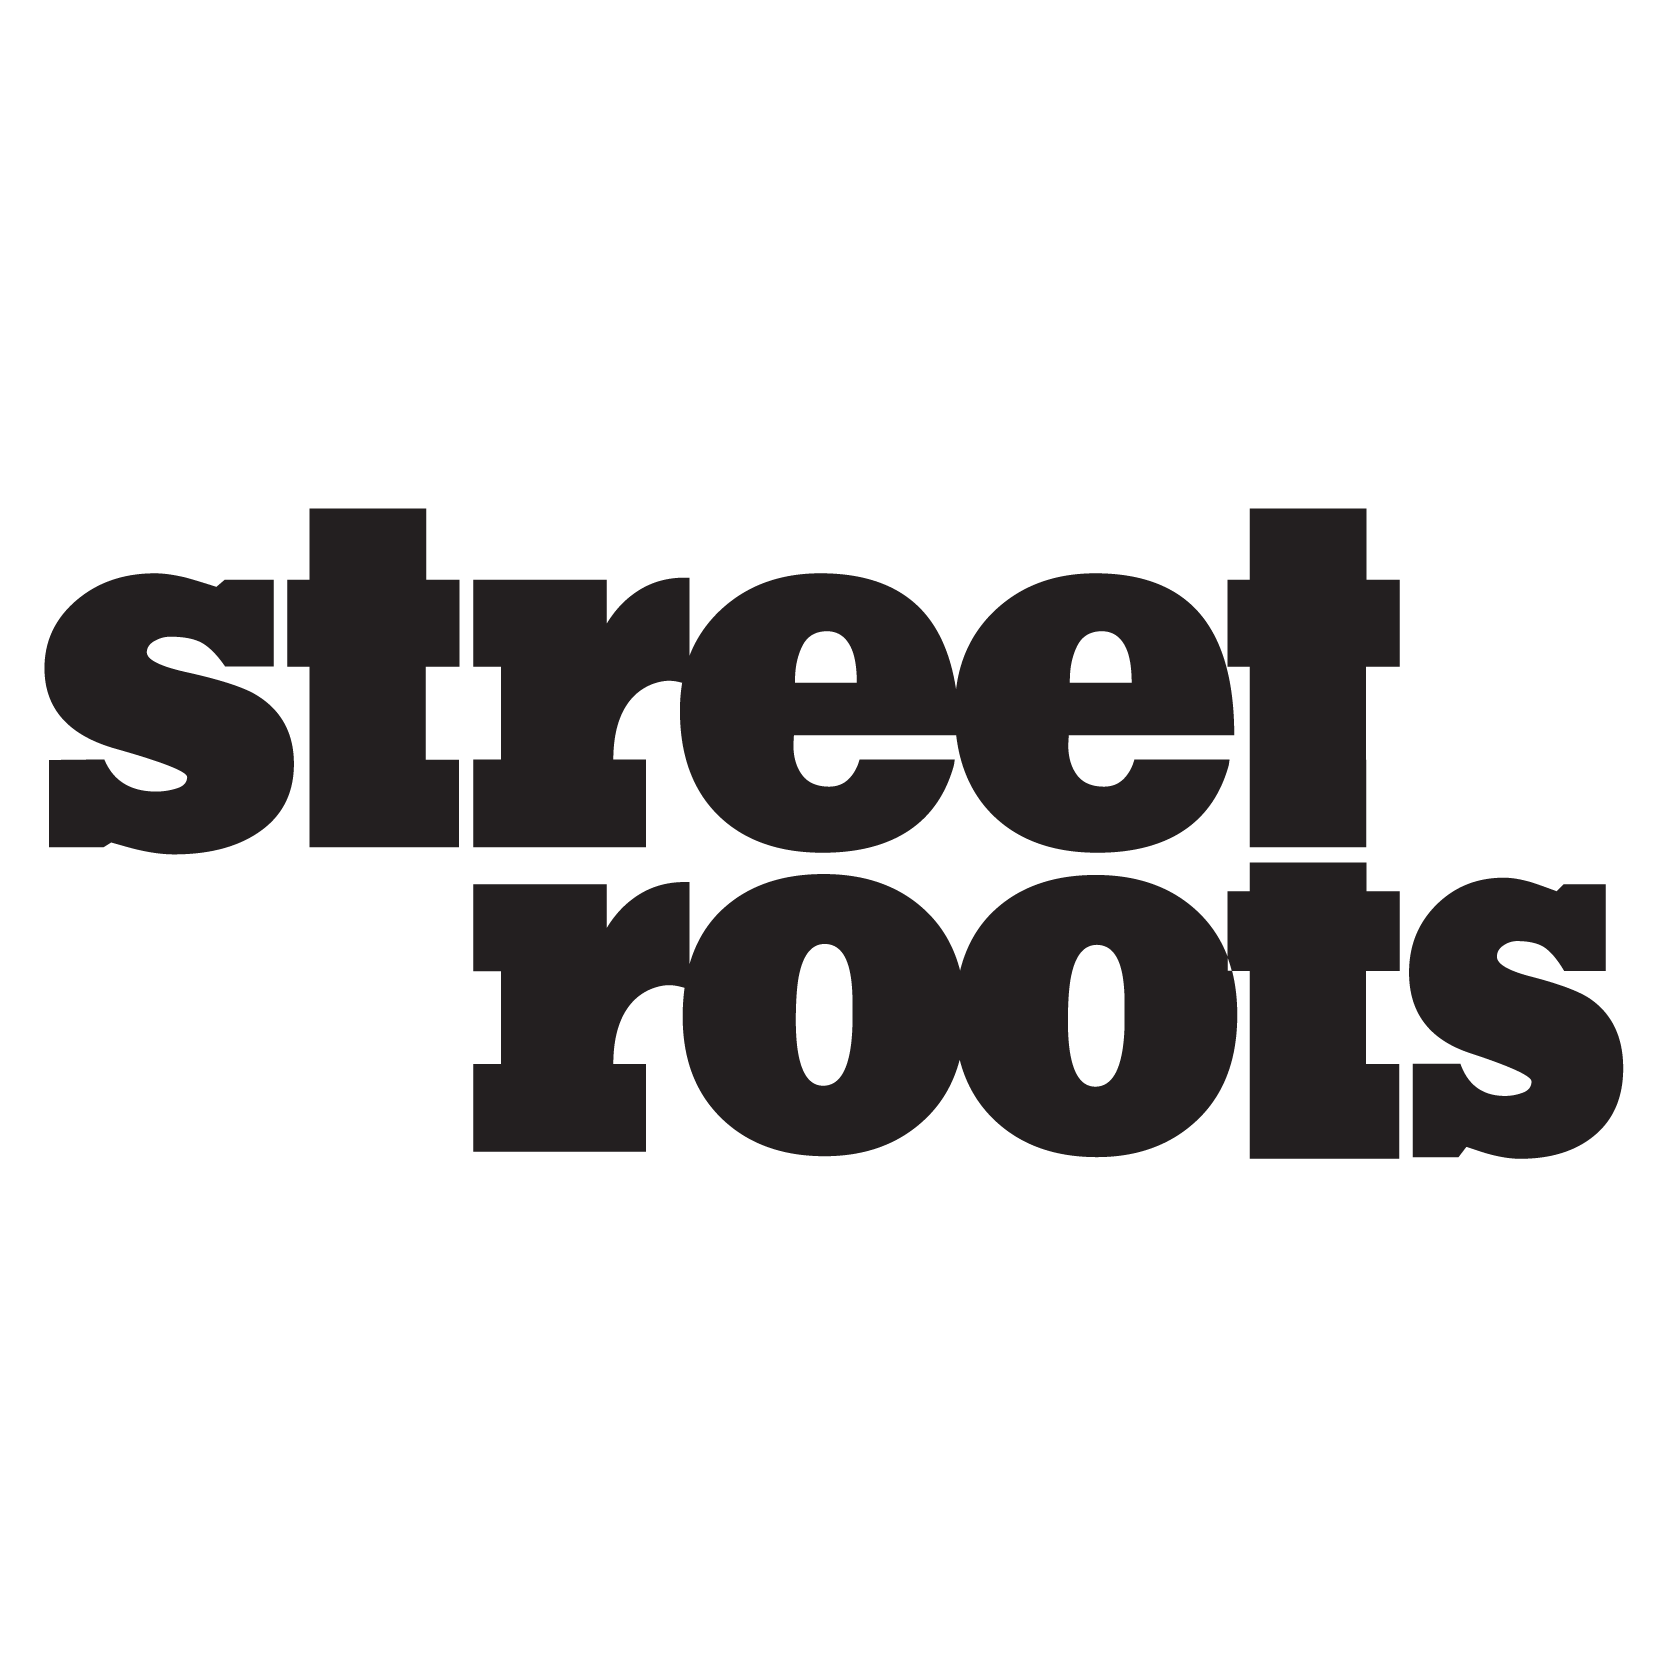 STREET ROOTS   Street Roots creates income opportunities for people experiencing homelessness and poverty by producing a newspaper and other media that are catalysts for individual and social change.